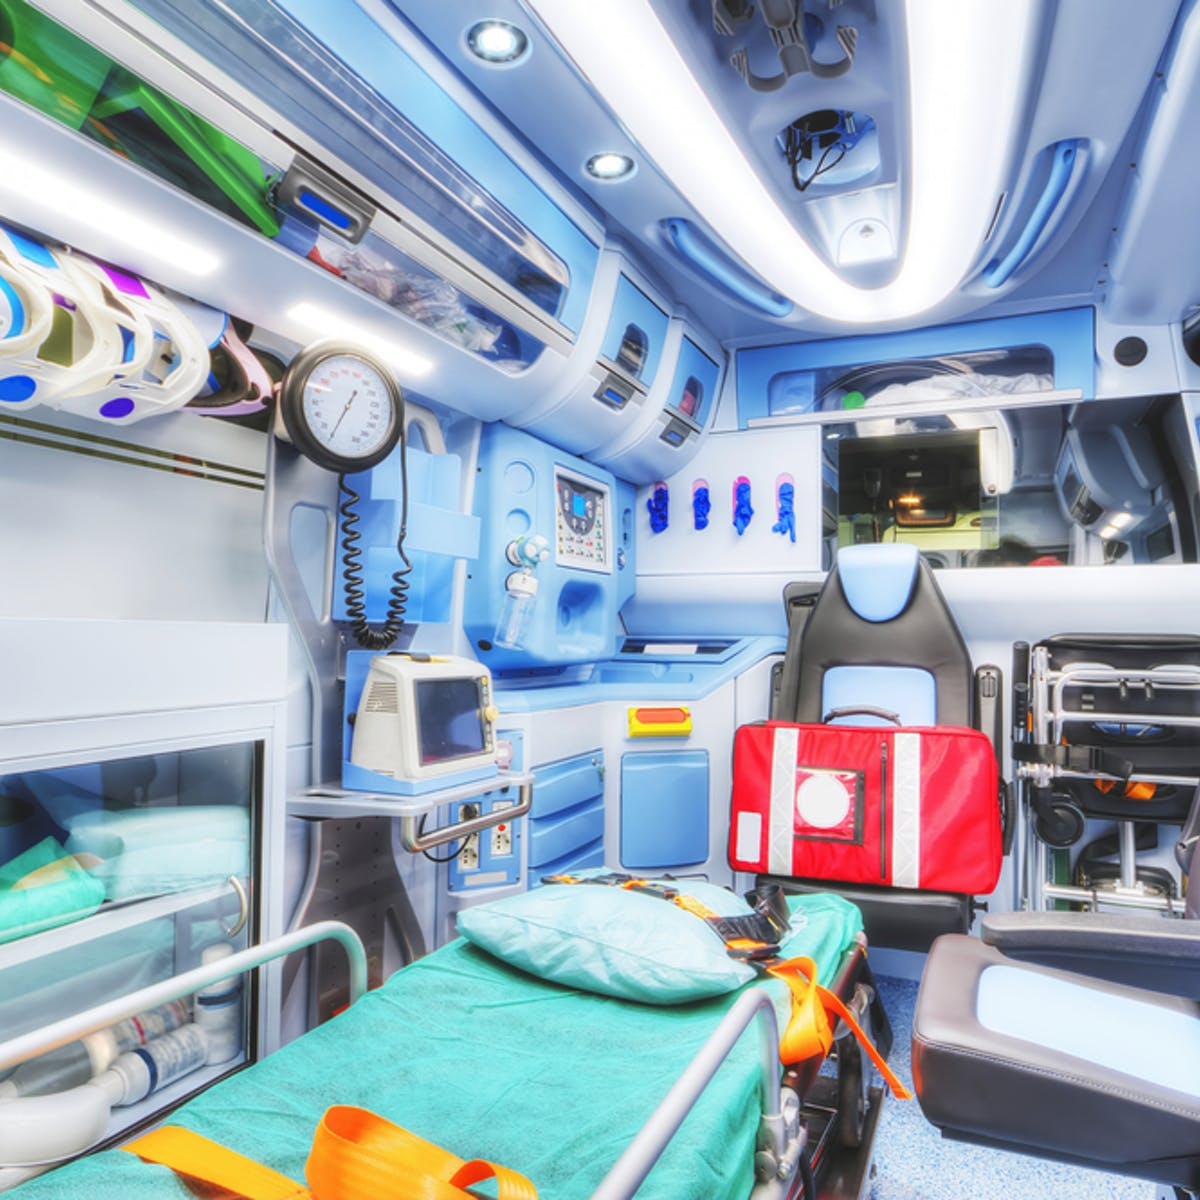 In the future your ambulance could be driverless